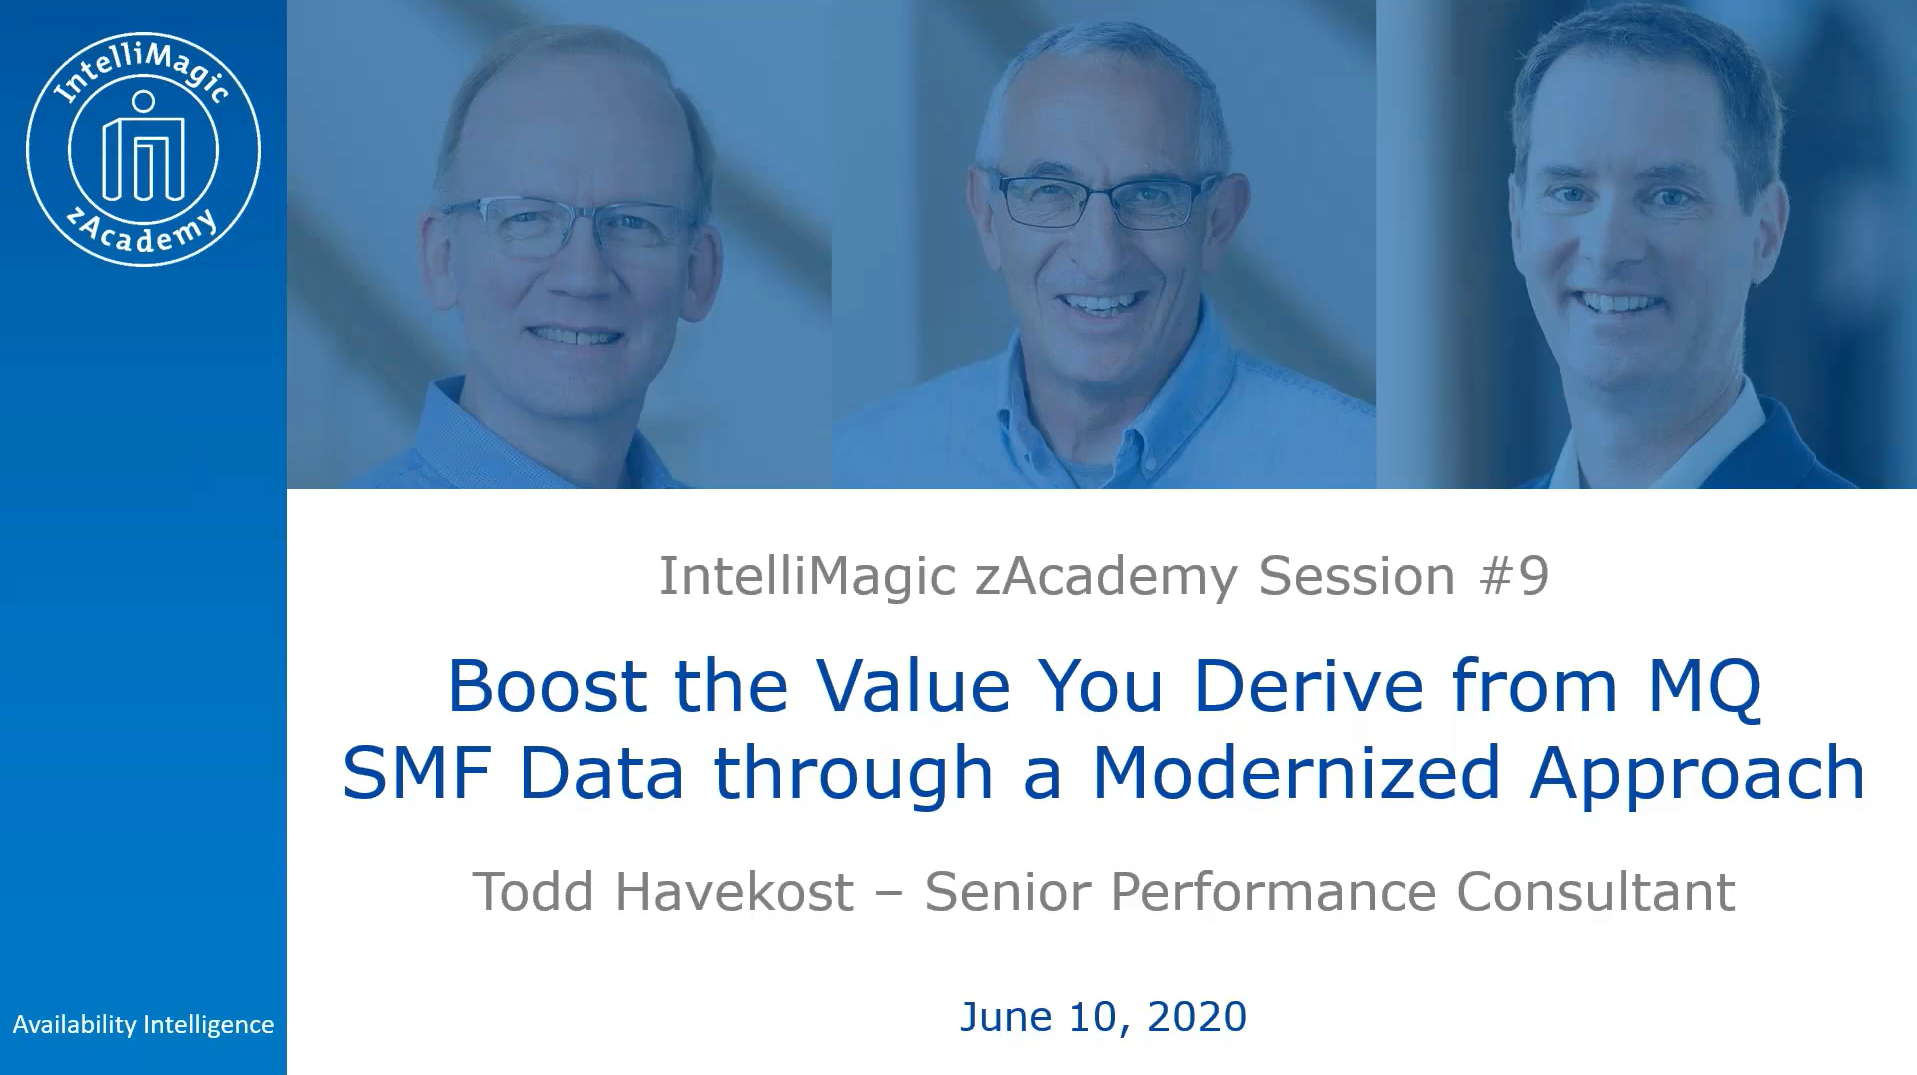 Boost the Value You Derive from MQ SMF Data through a Modernized Approach